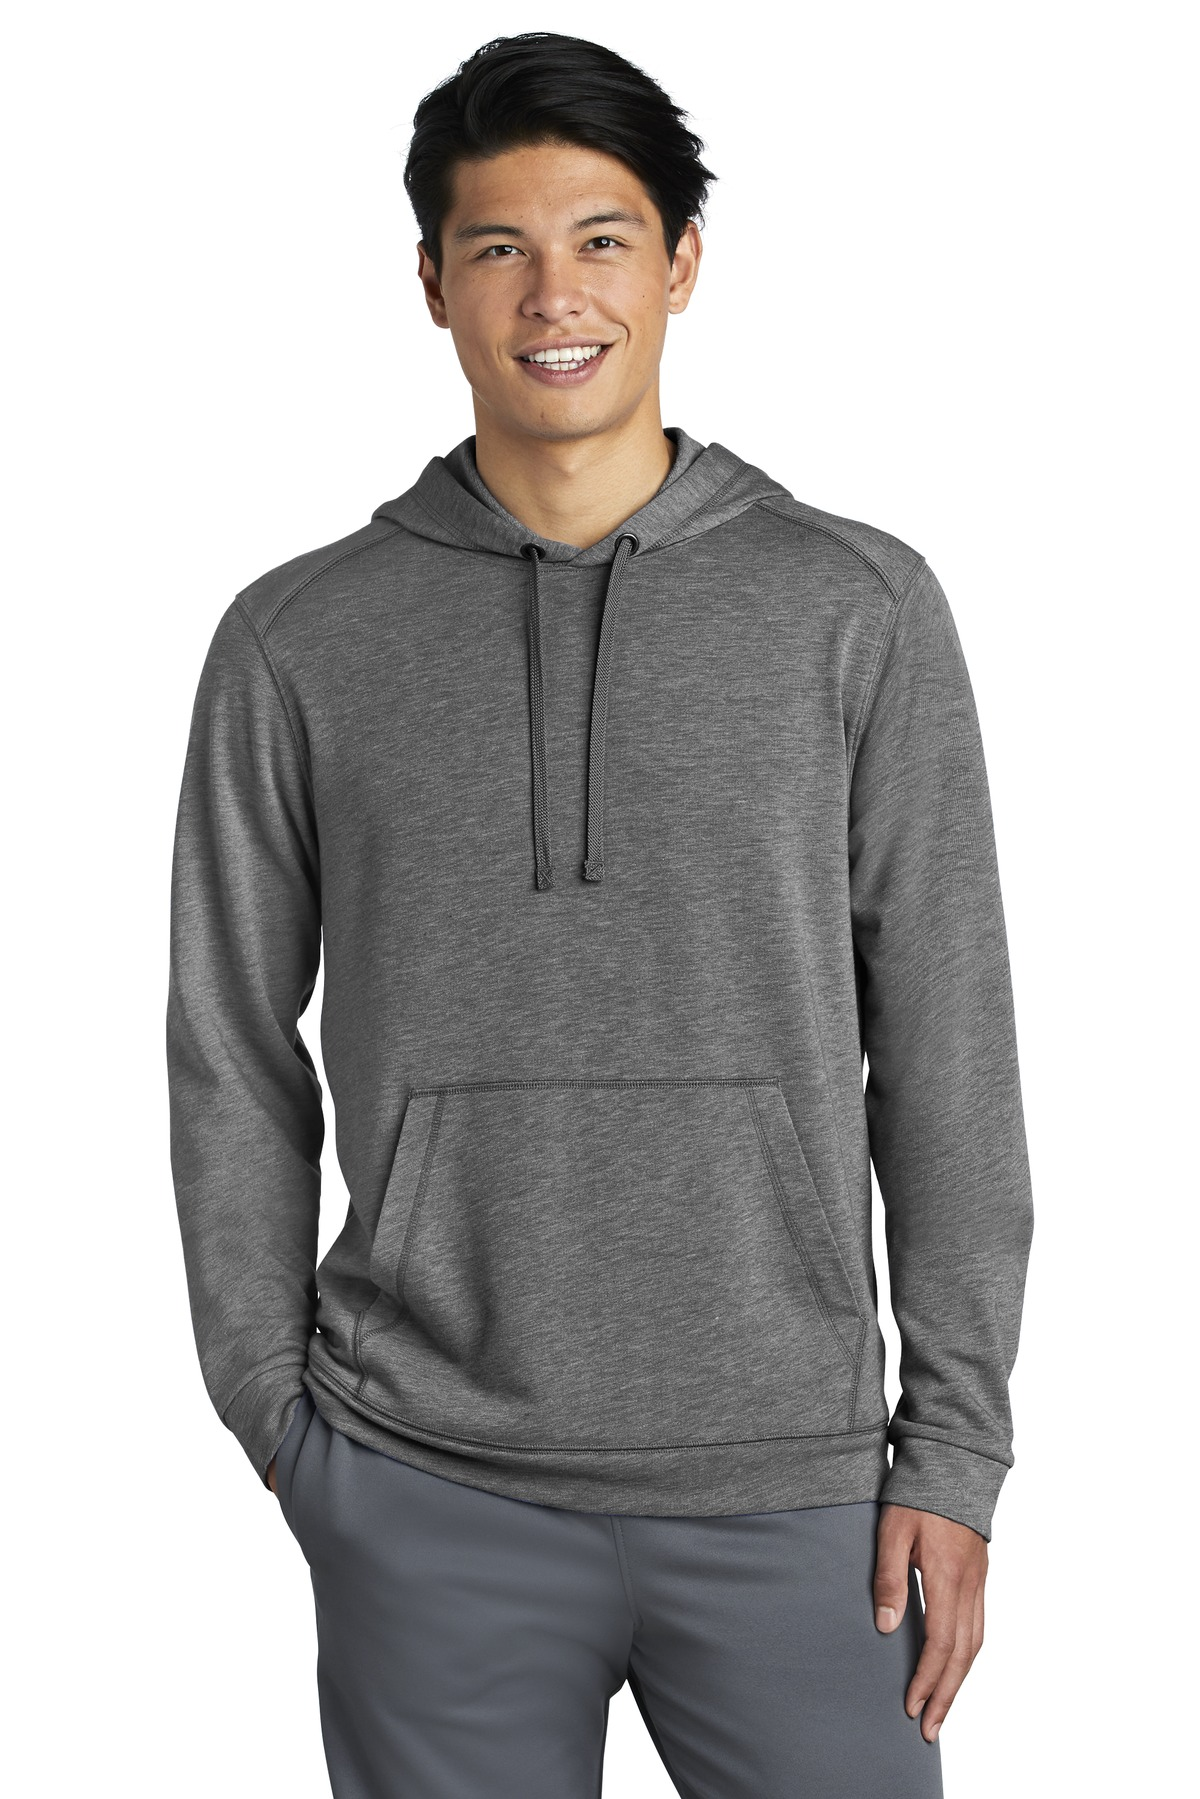 Sport-Tek  ®  PosiCharge  ®  Tri-Blend Wicking Fleece Hooded Pullover. ST296 - Dark Grey Heather